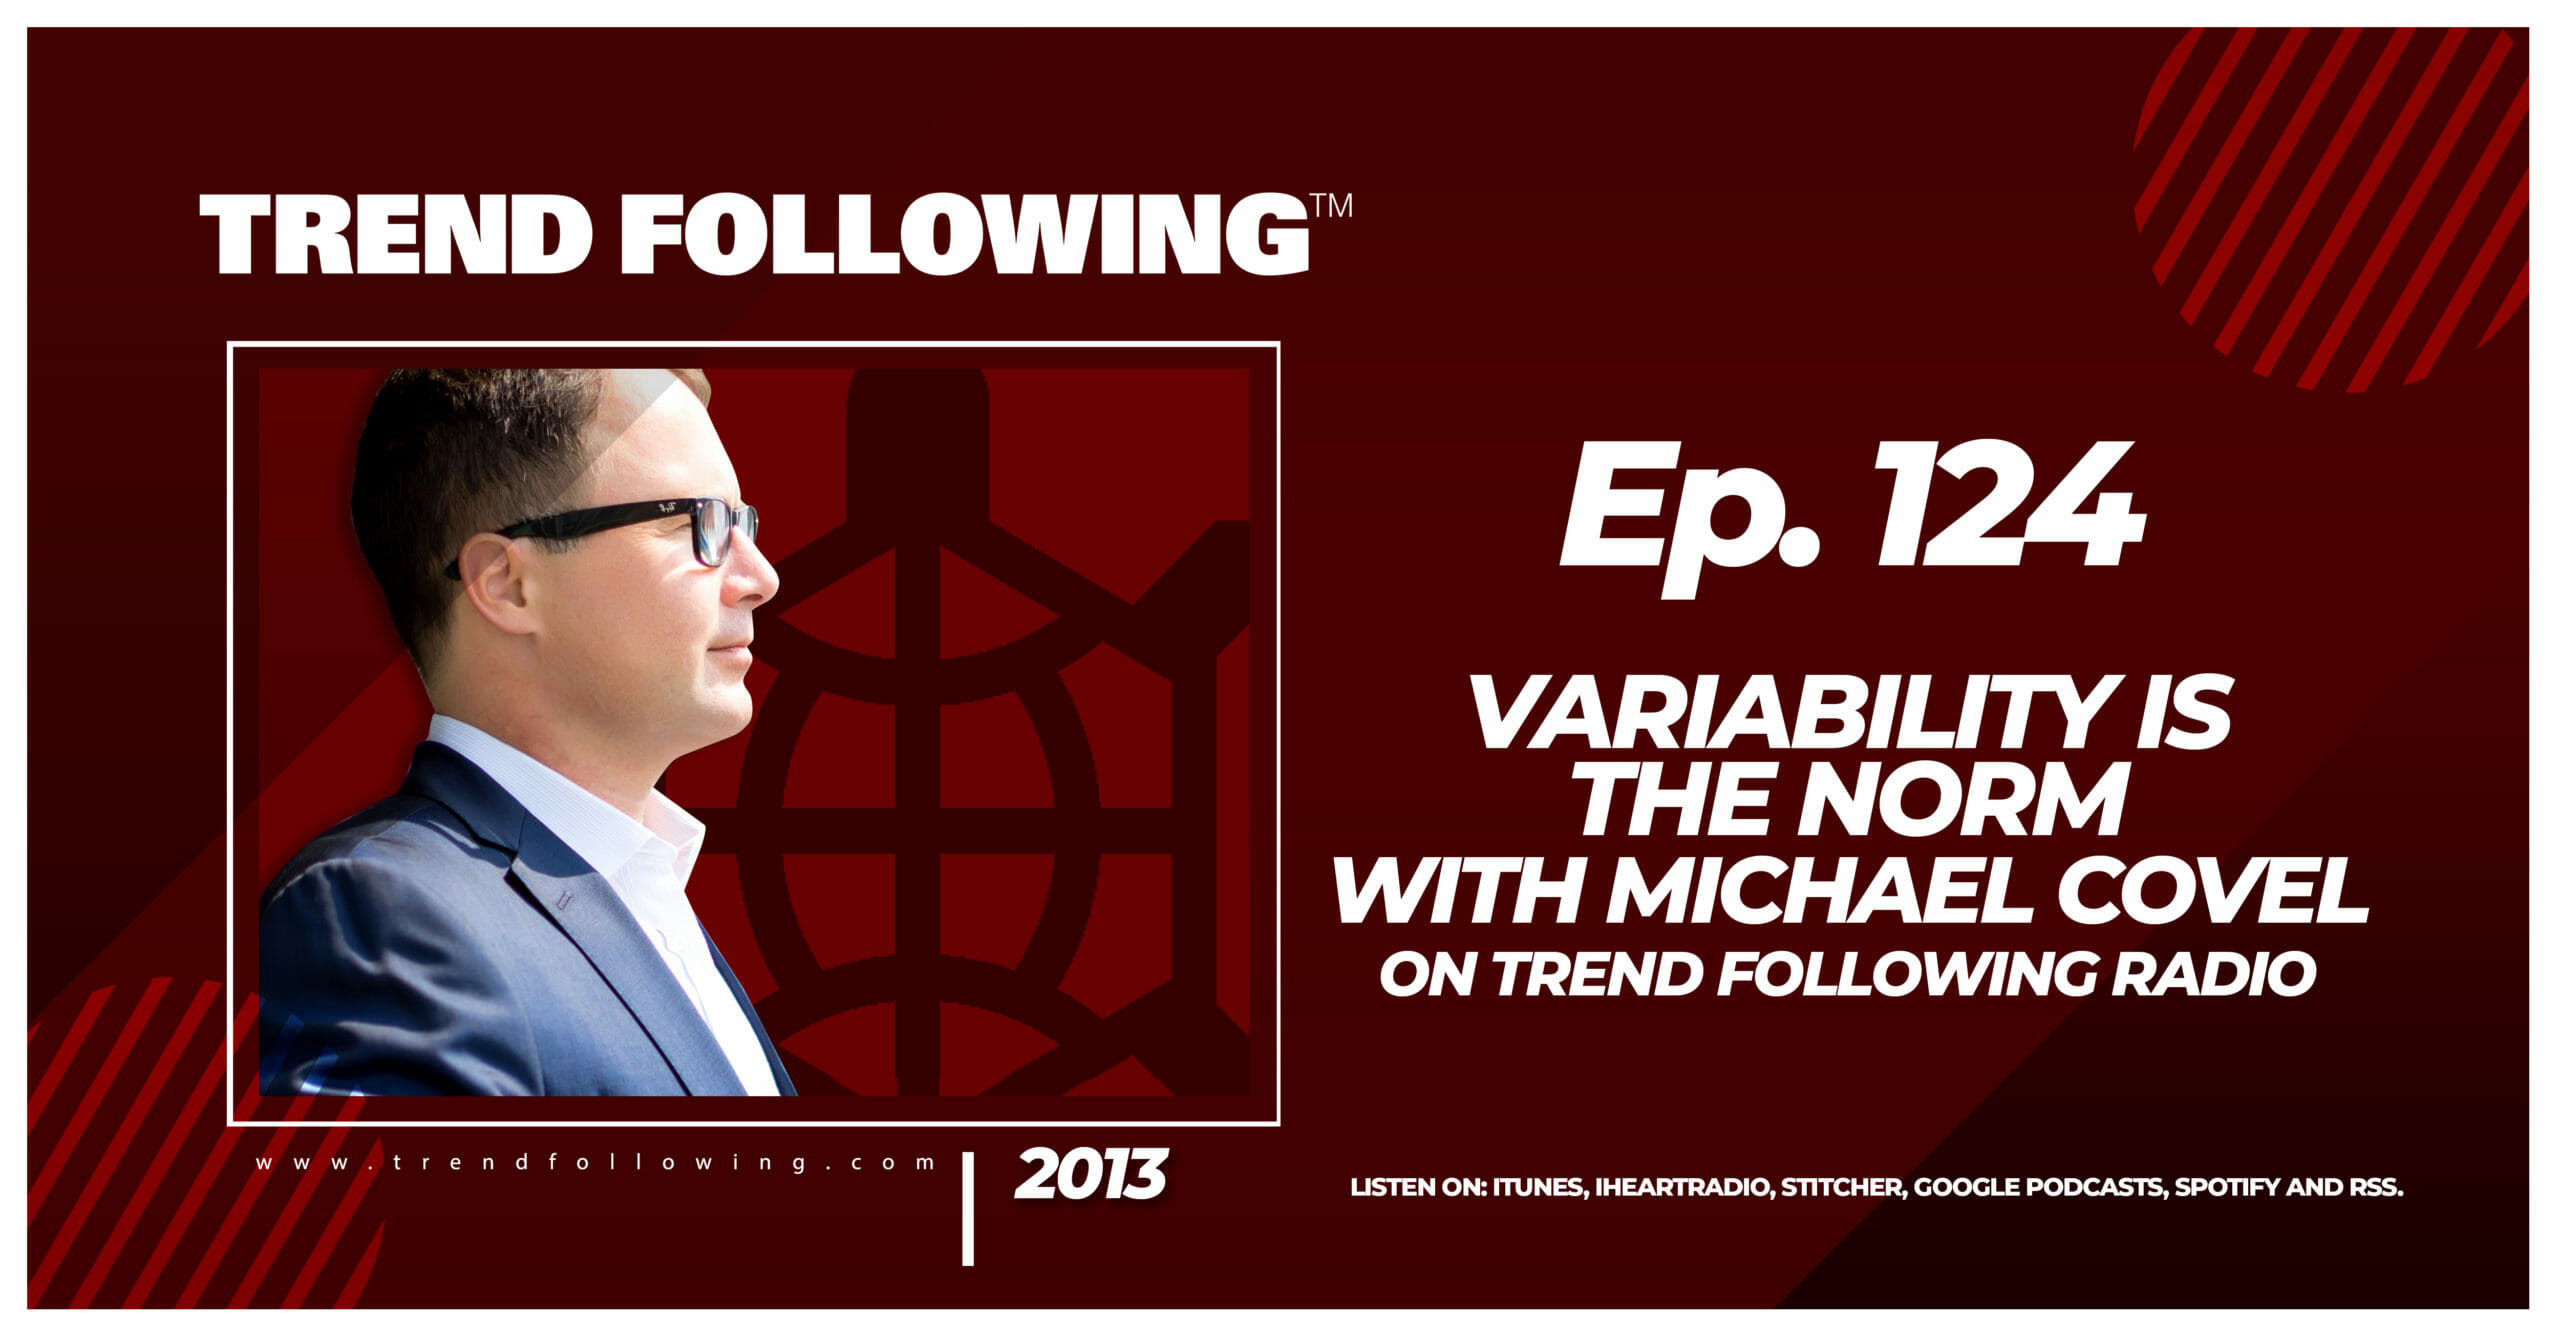 Variability is the Norm with Michael Covel on Trend Following Radio